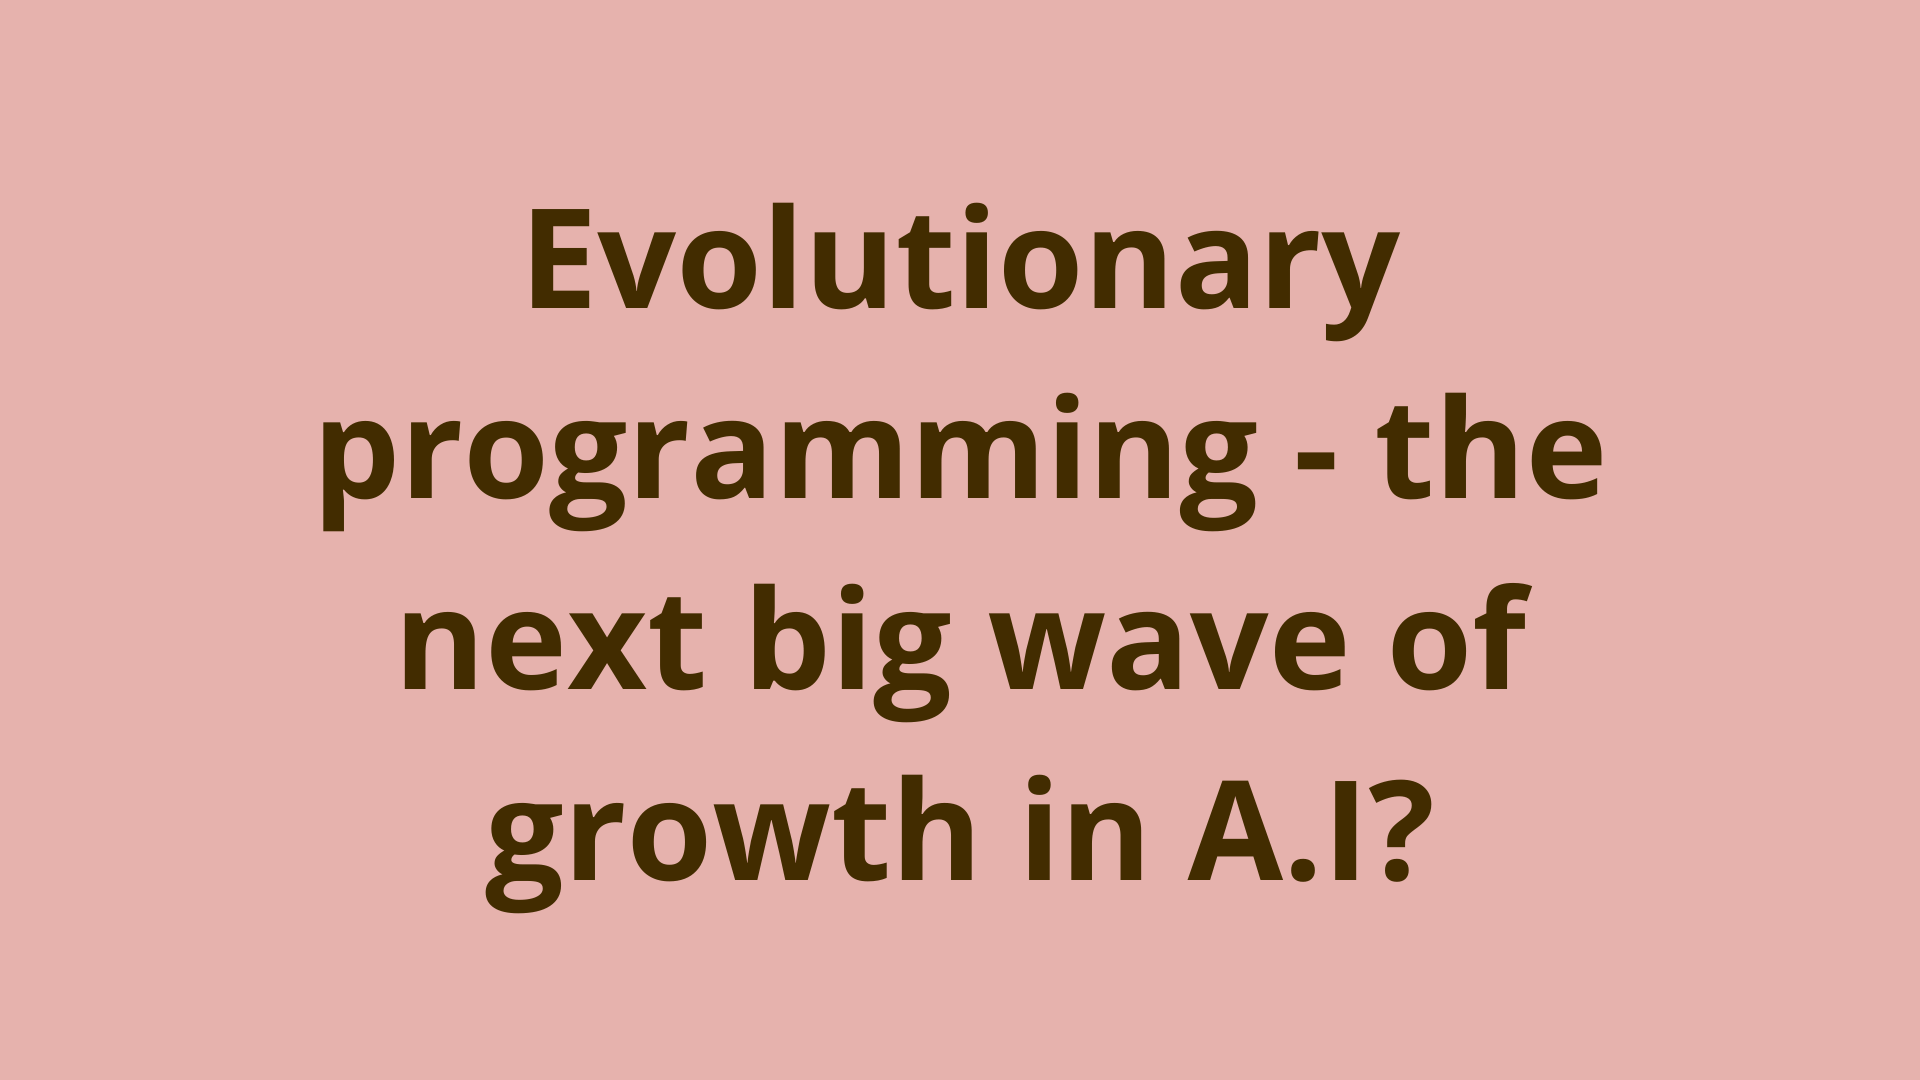 Image of Evolutionary programming - the next big wave of growth in A.I?